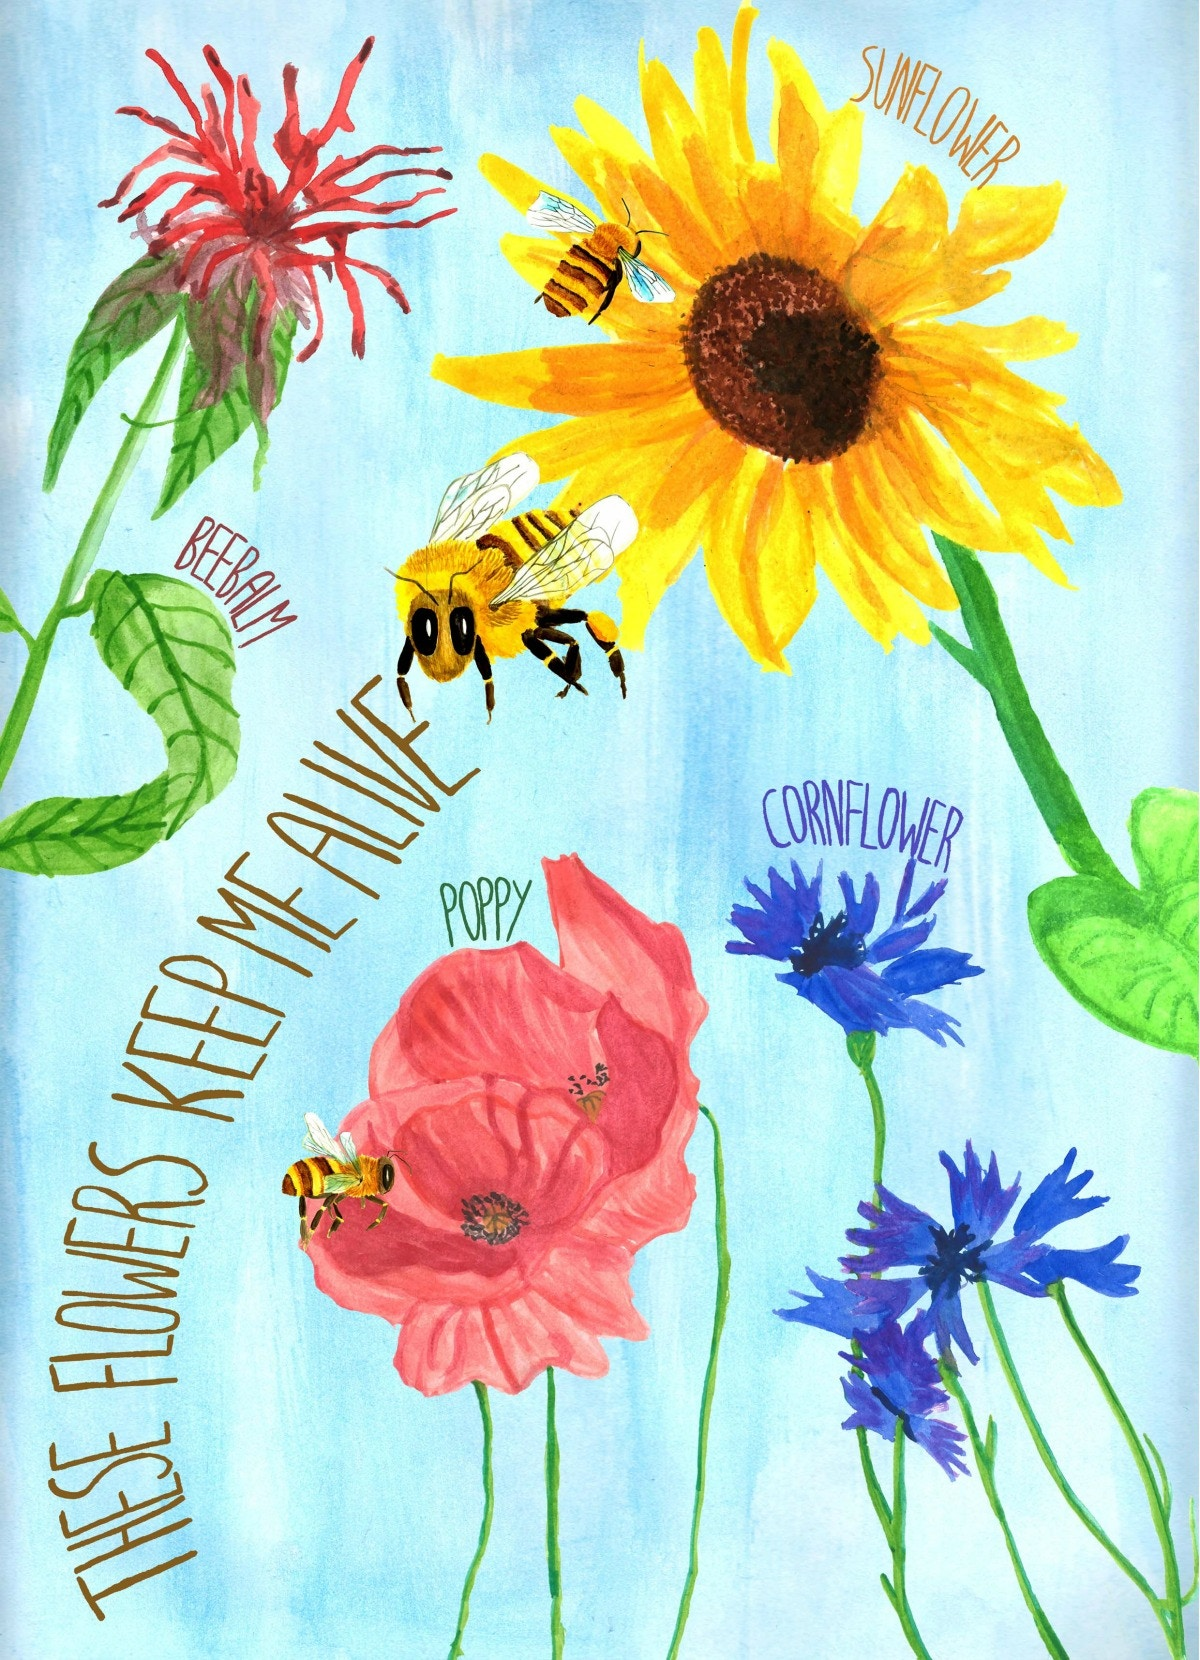 Another bee poster